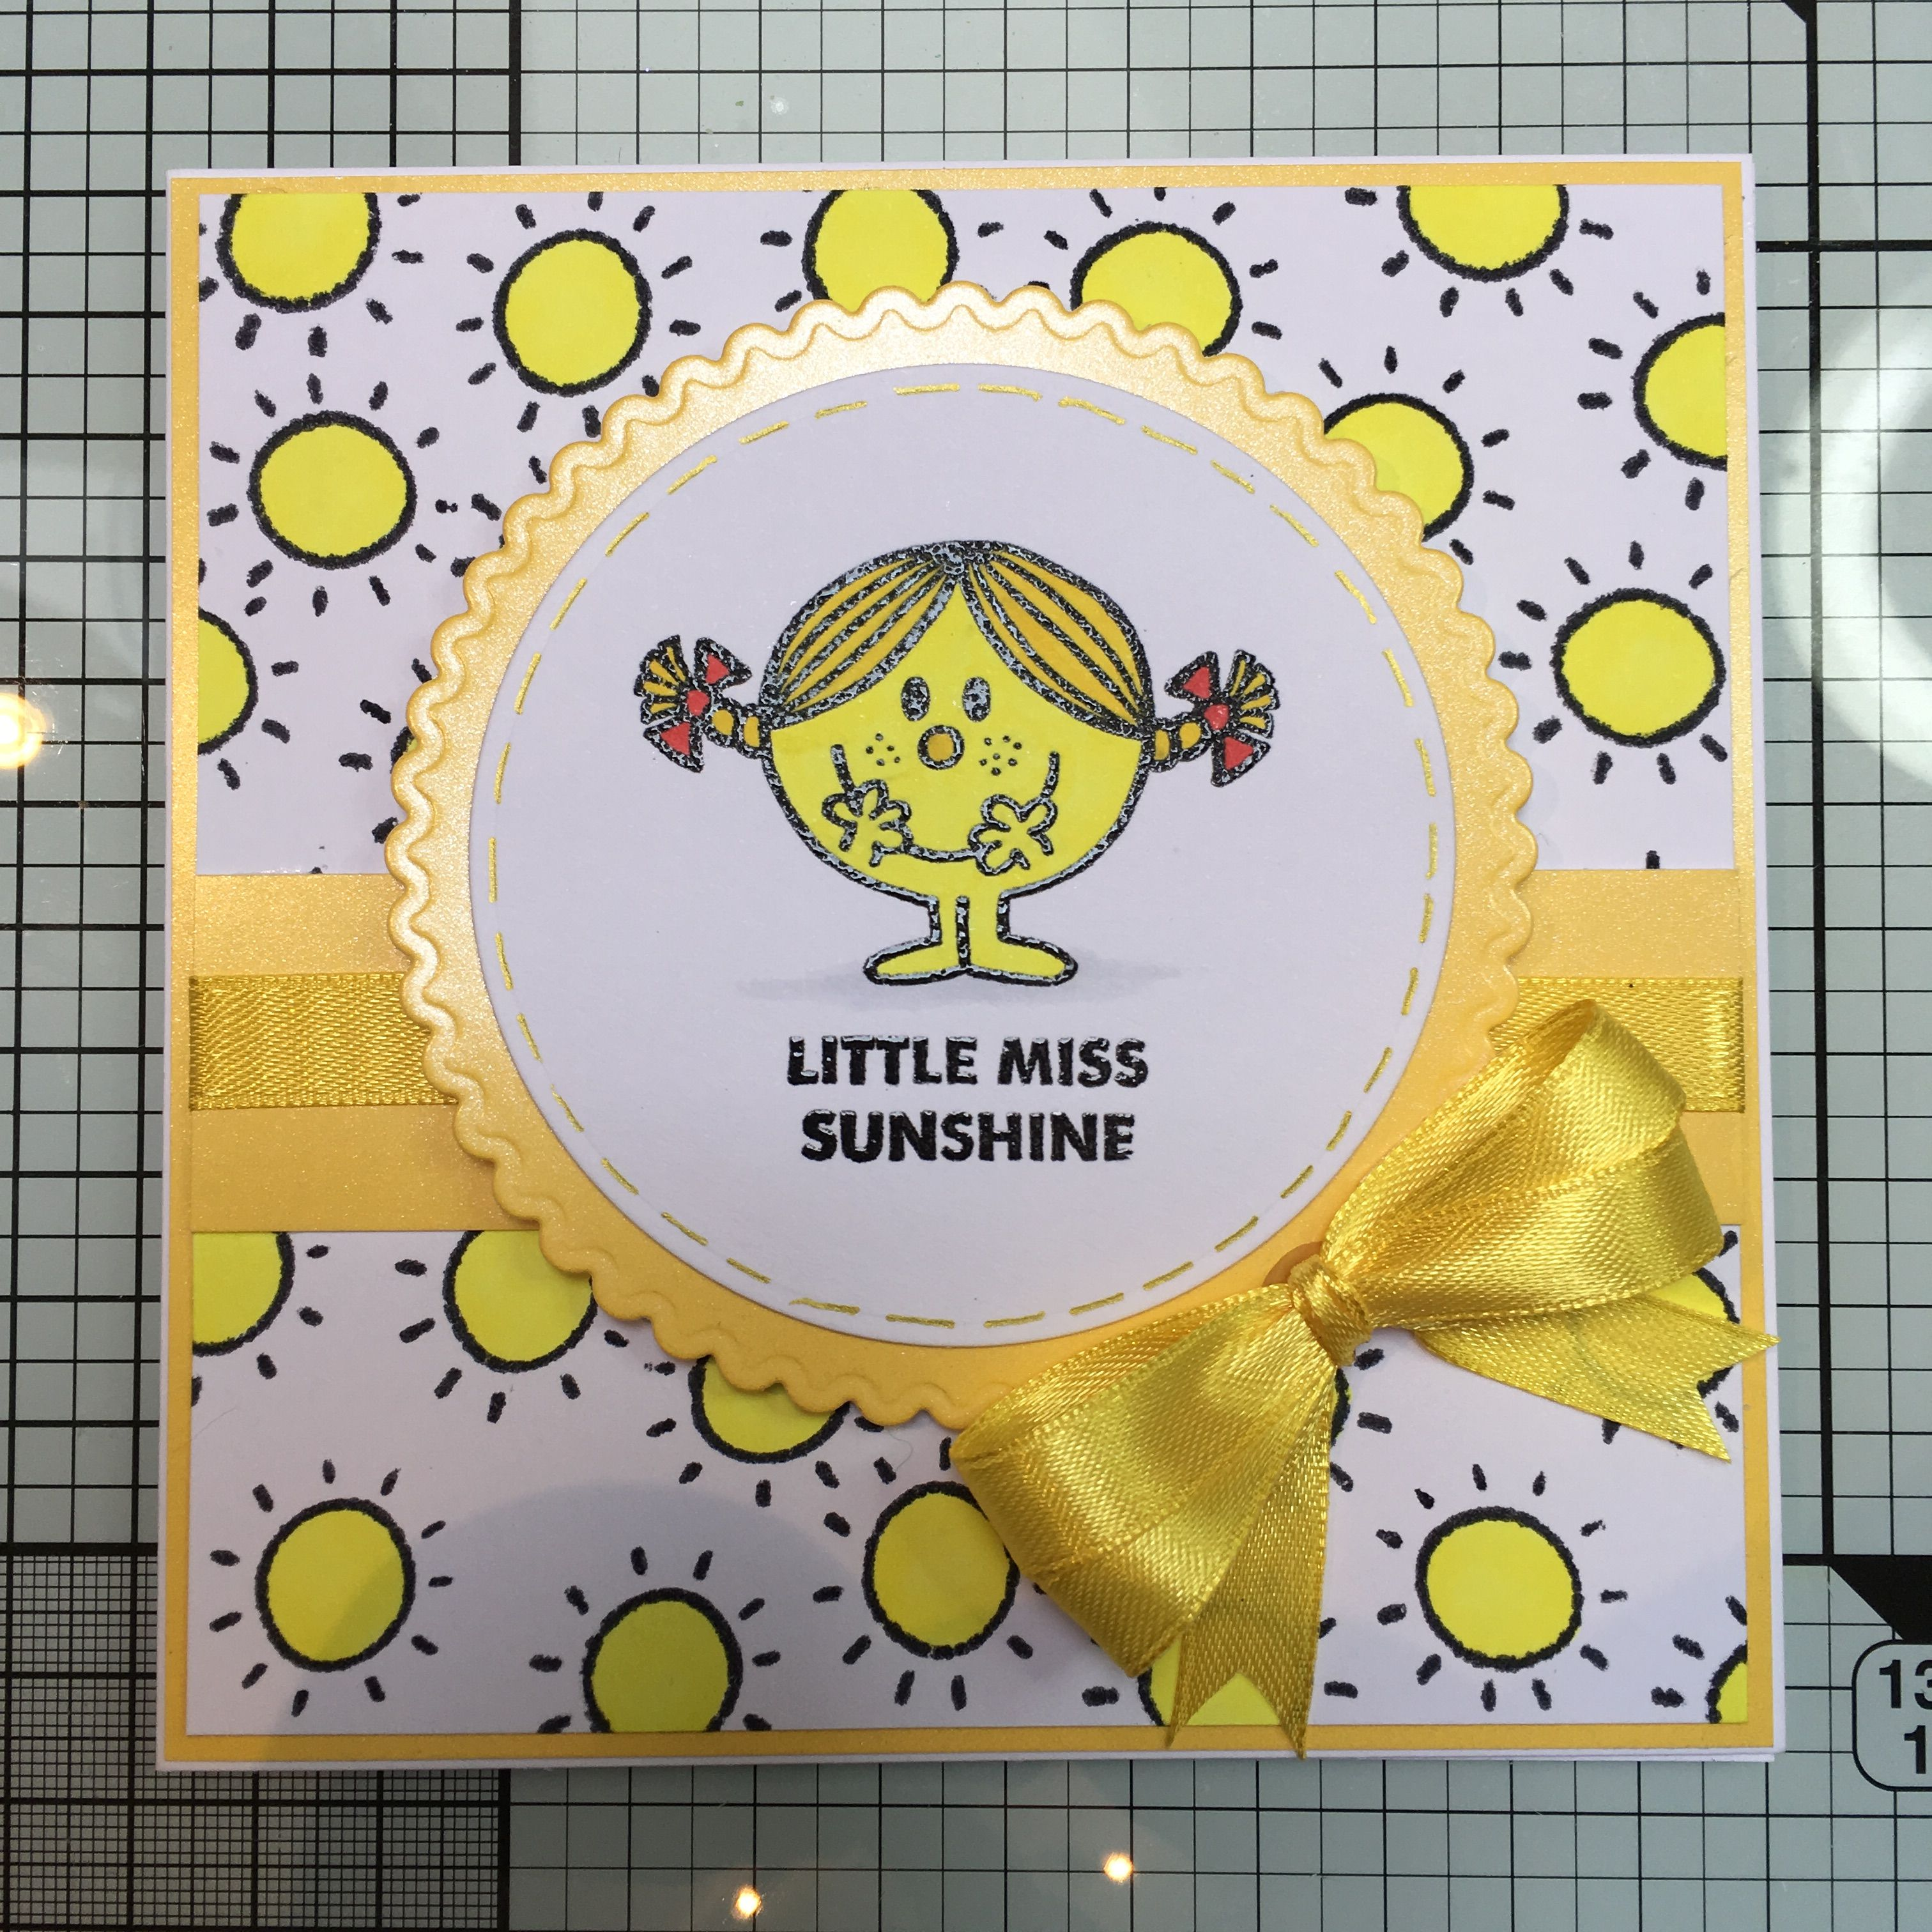 Little Miss And Mr Men Stamps Coloured With Copics Cards Handmade Little Miss Sunshine Cards